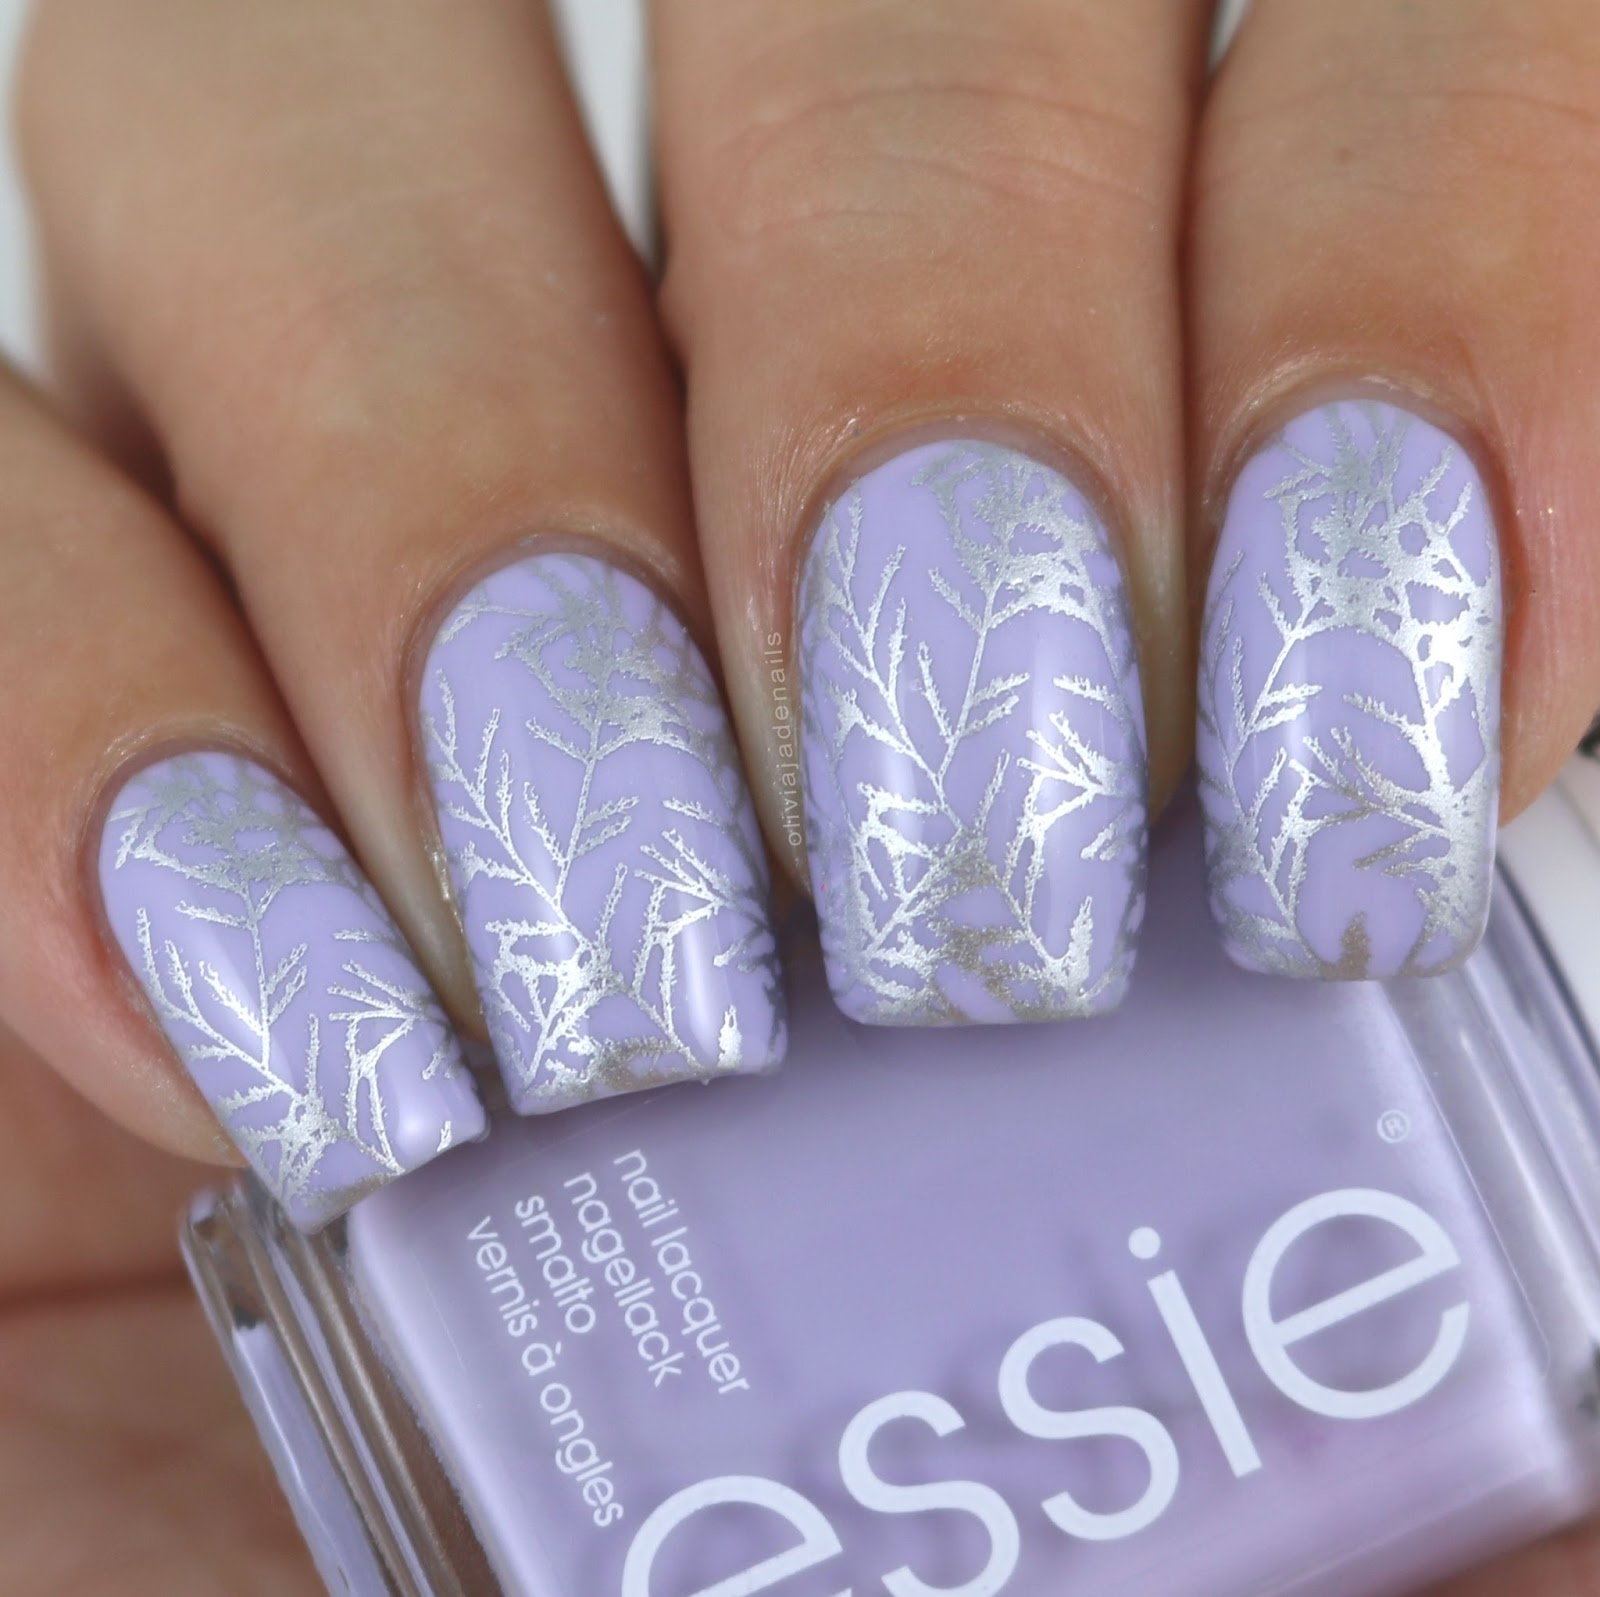 Olivia jade nails lina nail art supplies 4 seasons winter 01 one of the things that i love about lina nail art supplies prinsesfo Gallery